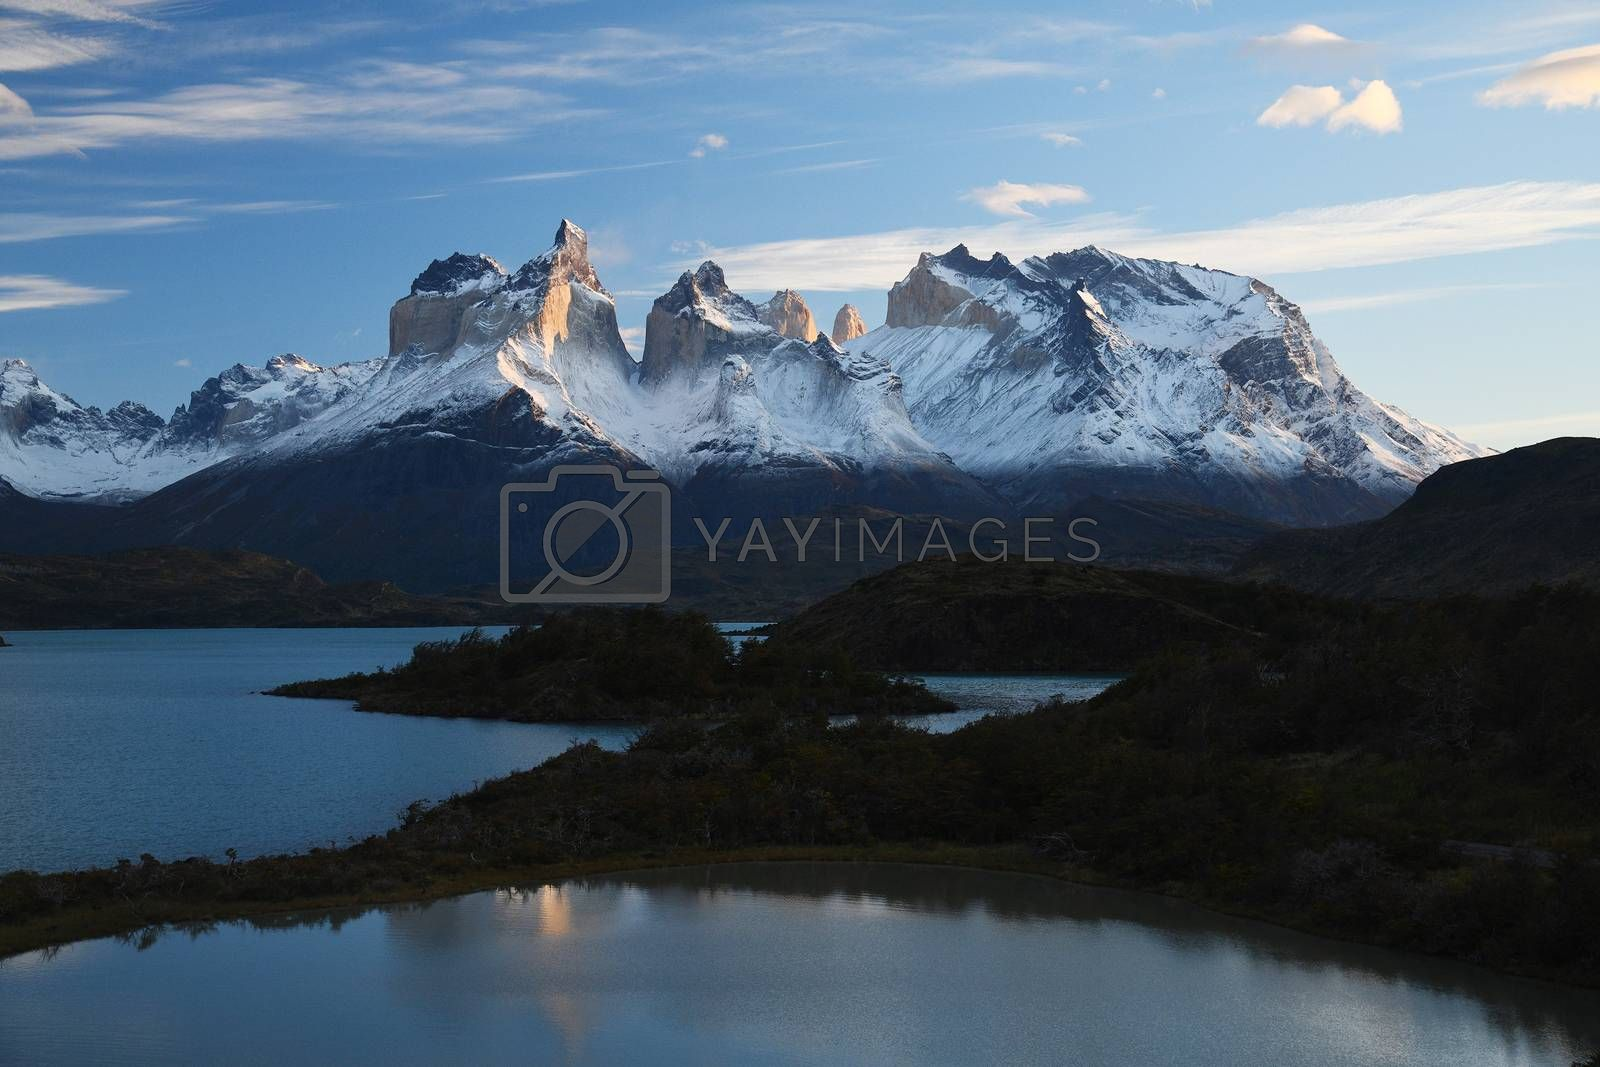 Royalty free image of Sunrise at Torres del Paine Chile by porbital